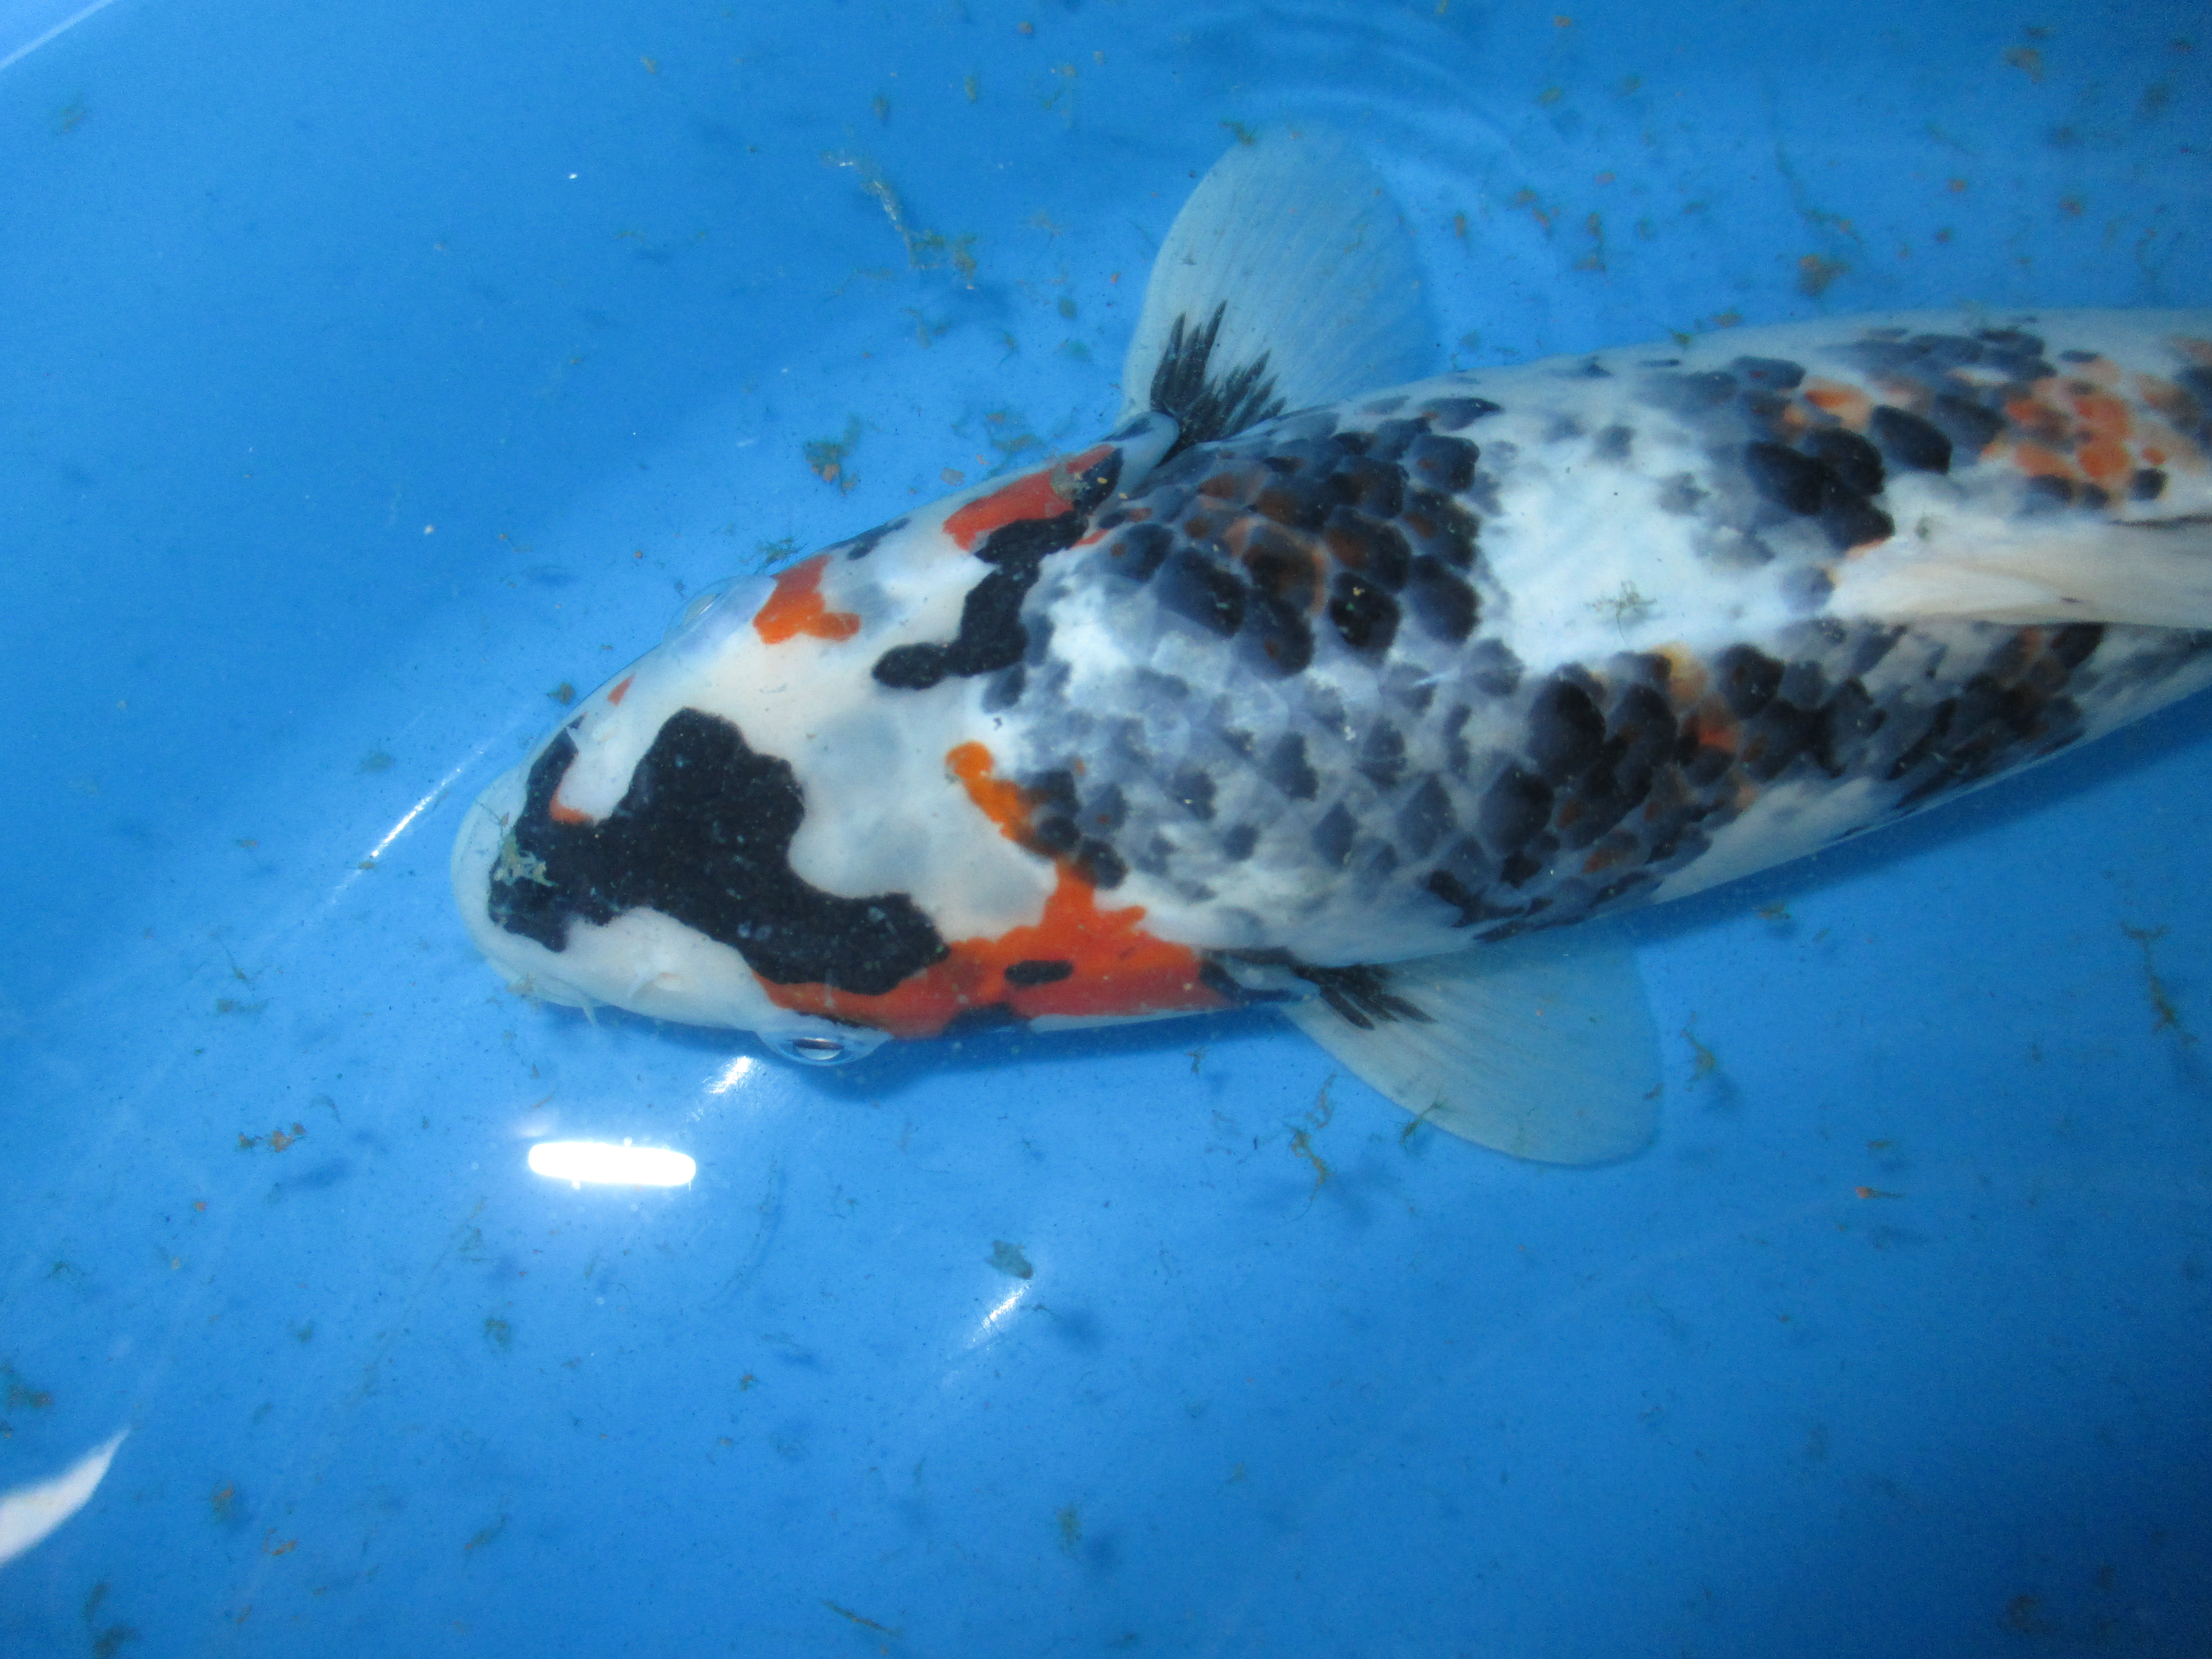 Japan koi fish for sale in singapore marugen koi farm for Fish for sale koi